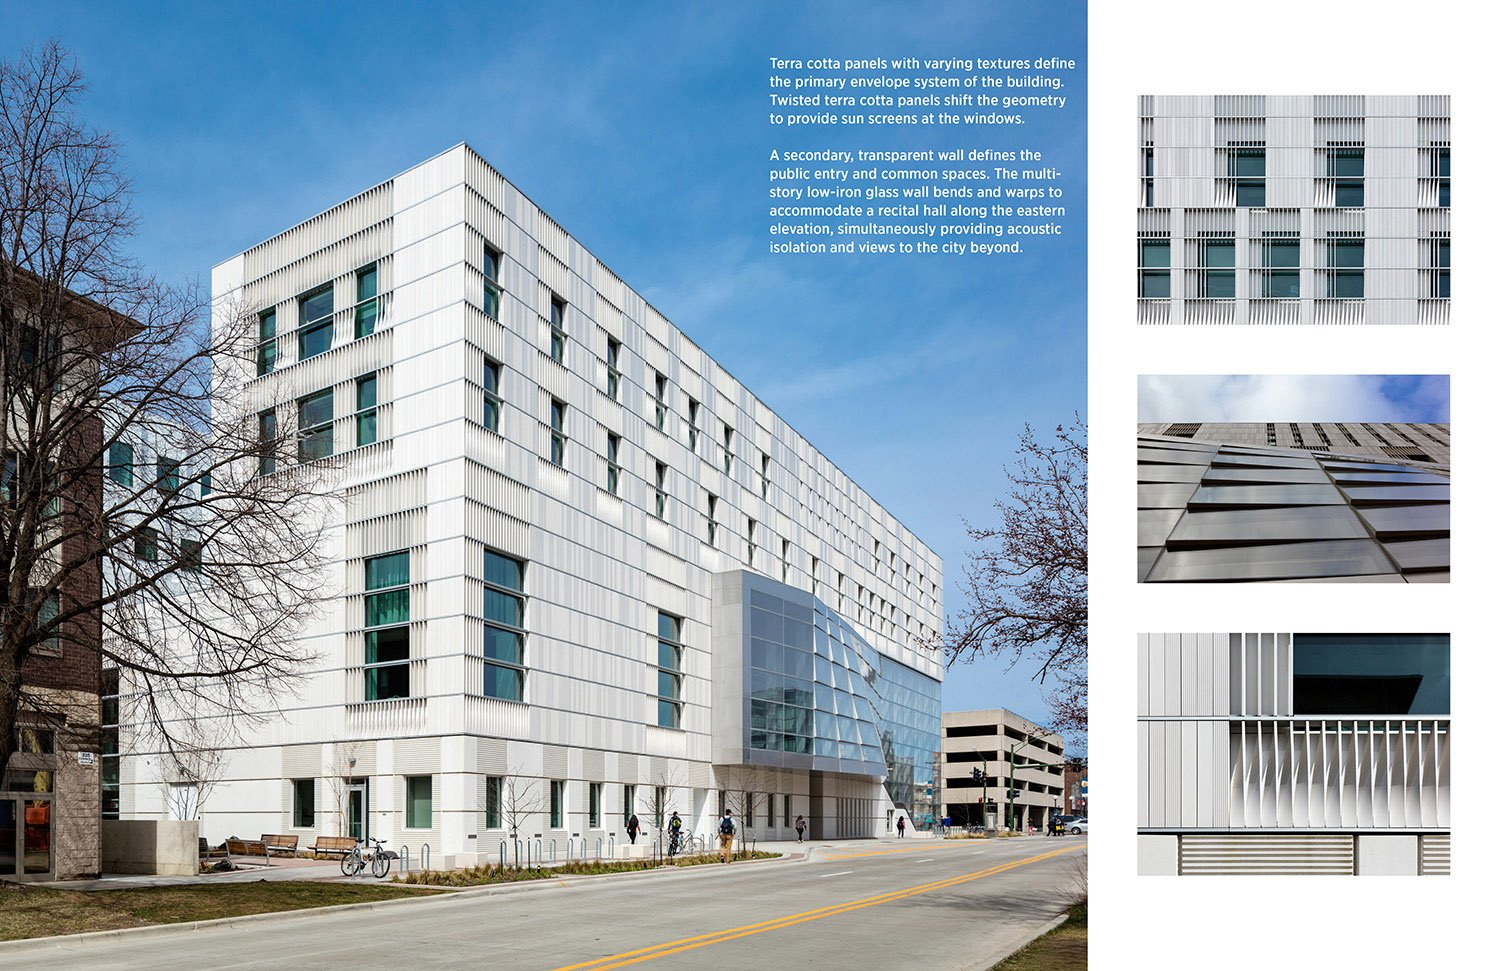 Terra cotta panels with varying textures define the building's primary envelope system. Twisted terra cotta panels shift the geometry to provide sun screens at the windows. A secondary transparent wall def Tim Griffith}